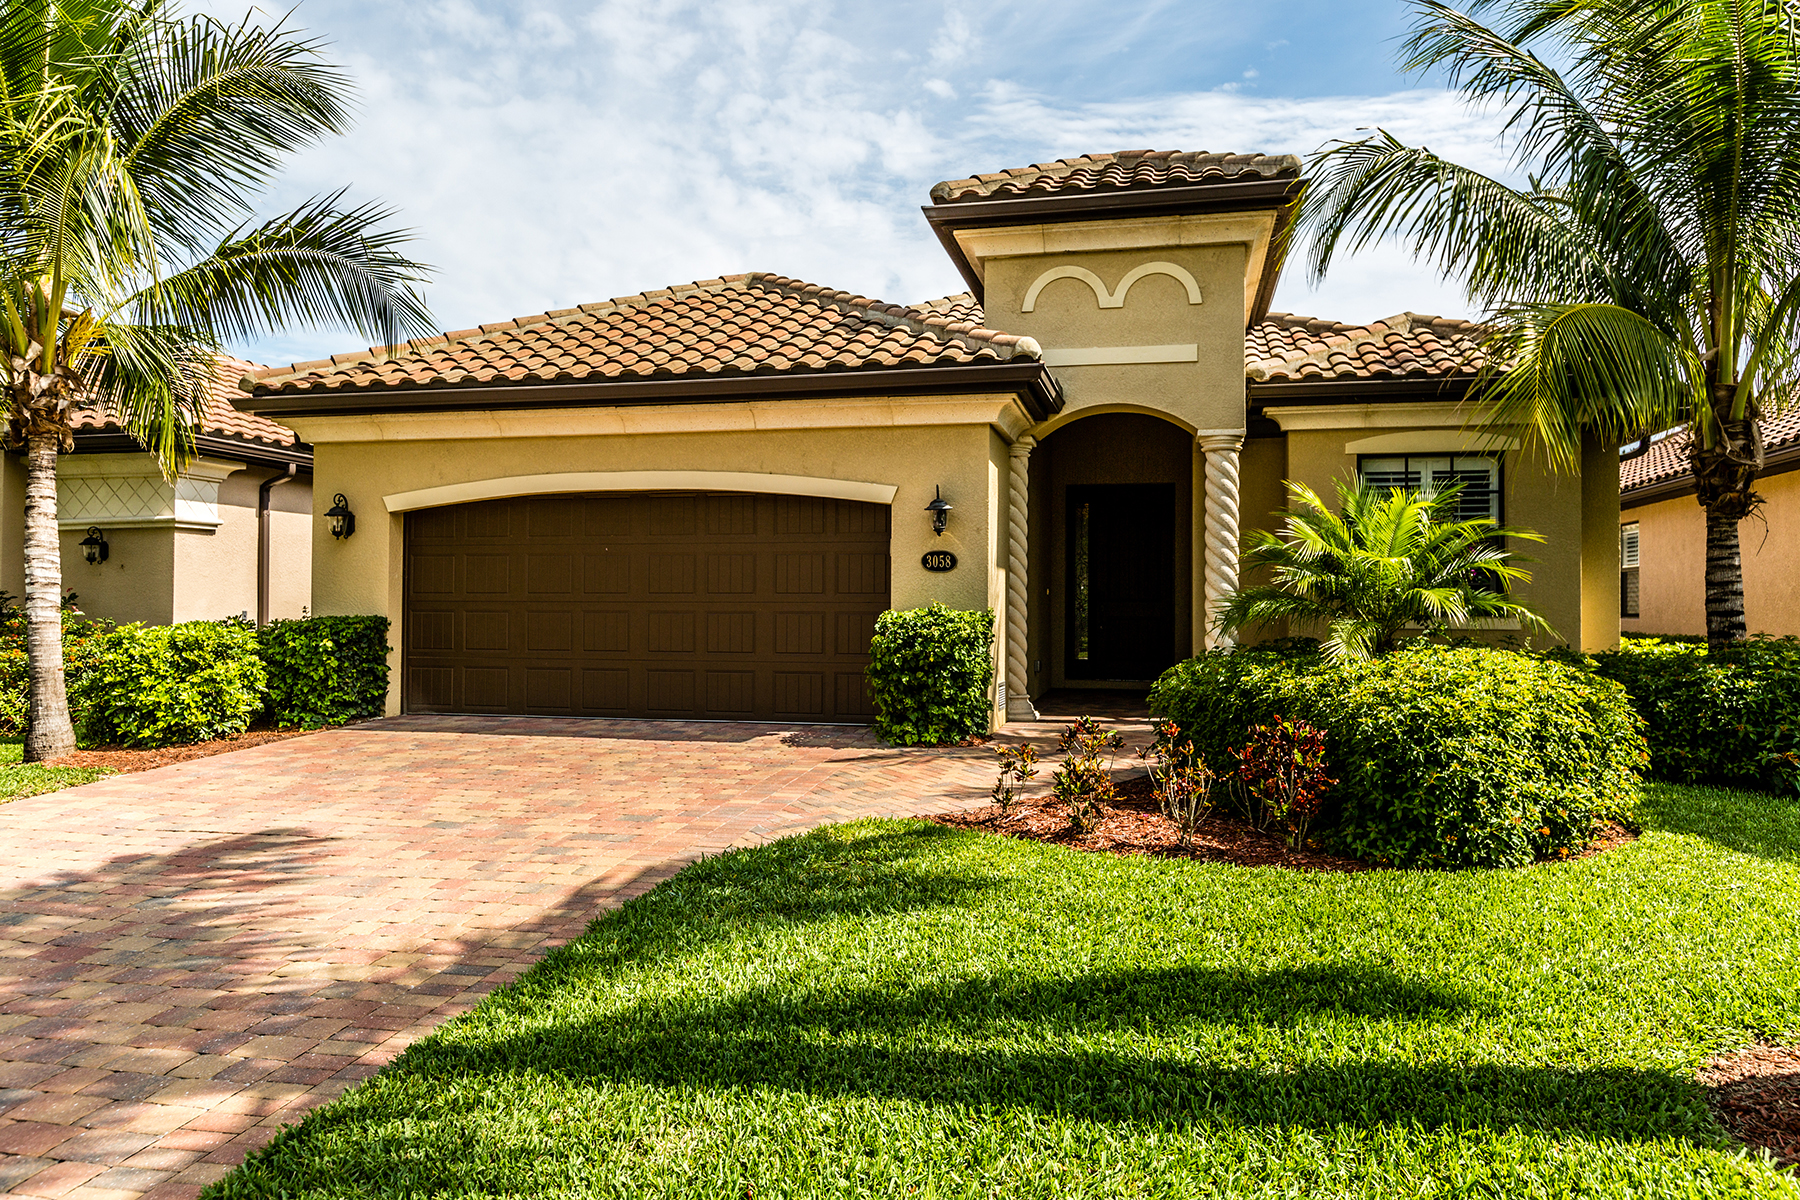 Maison unifamiliale pour l Vente à FIDDLER'S CREEK -MILLBROOK 3058 Aviamar Cir Naples, Florida, 34114 États-Unis